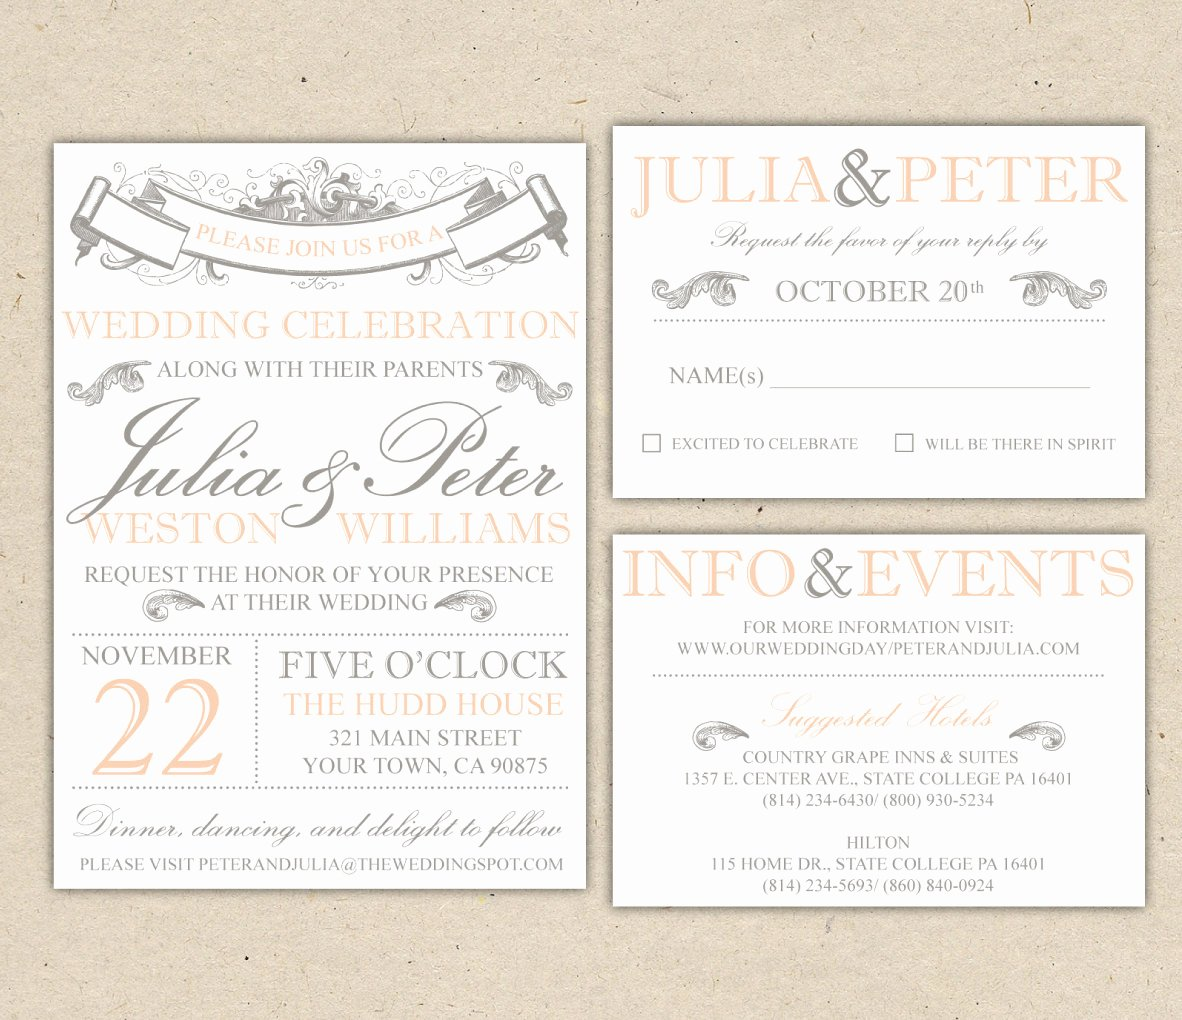 Wedding Invitation Template for Word Awesome Wedding Invitation Template Word